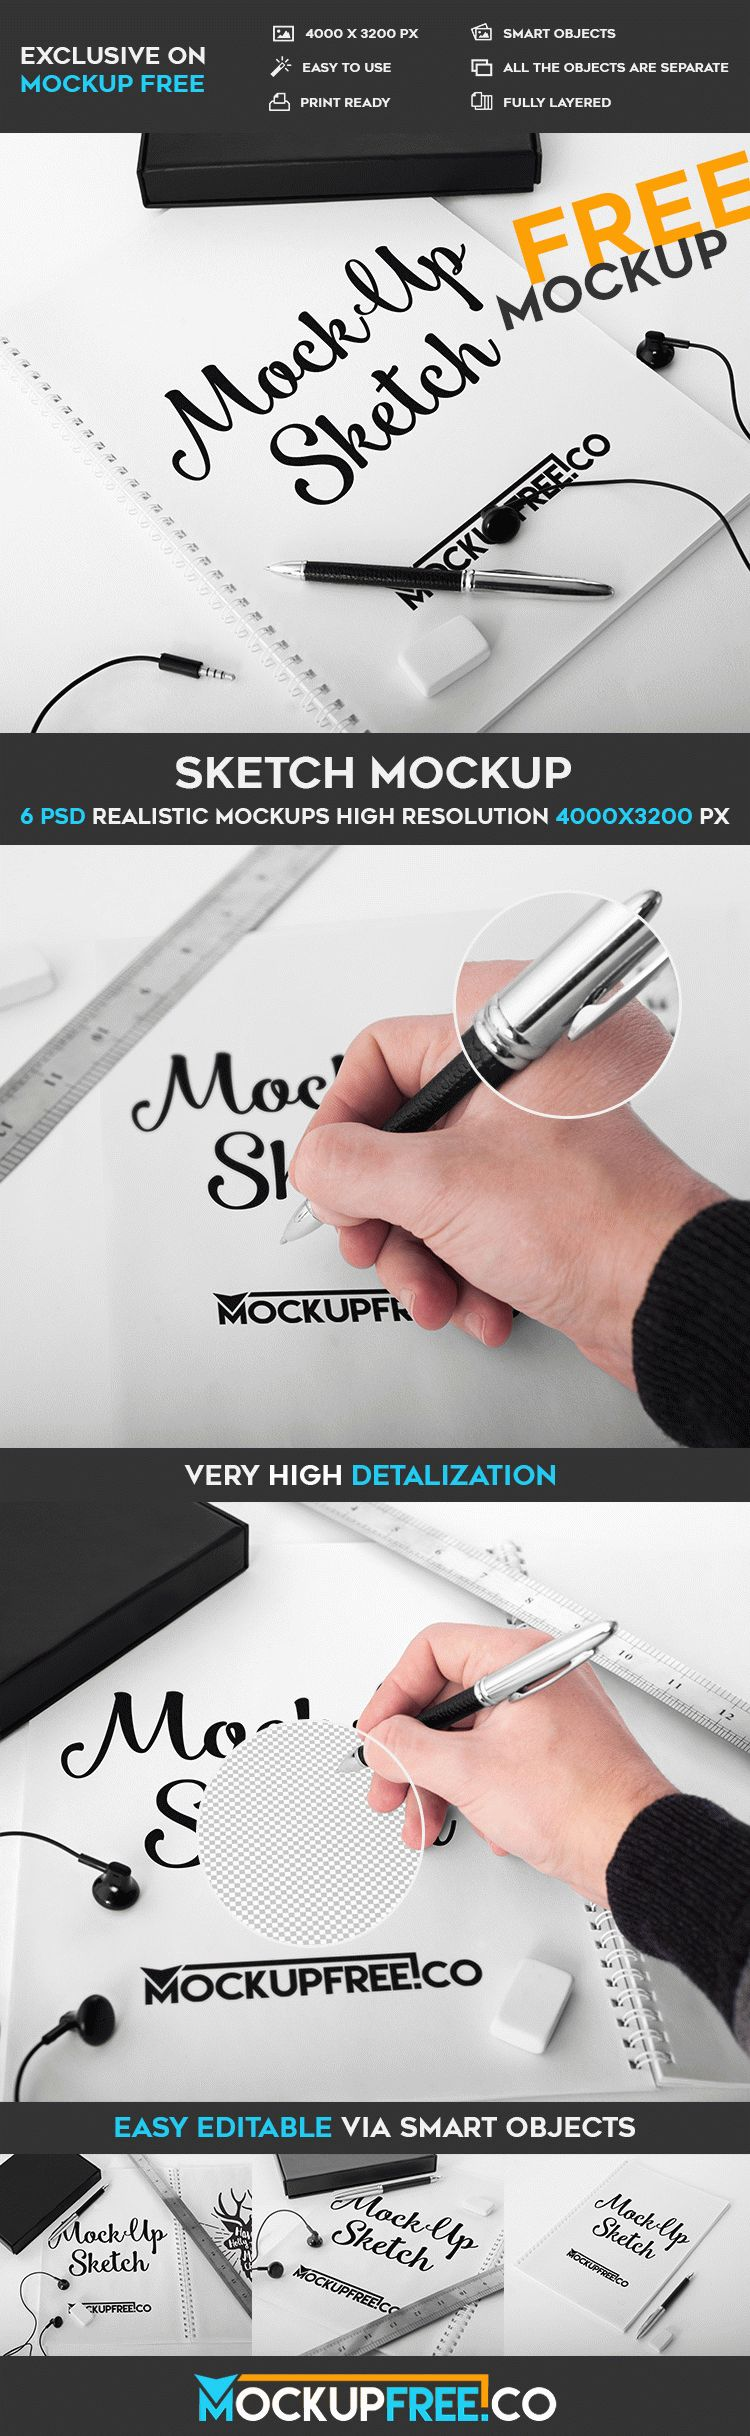 Sketch – 6 Free PSD Mockups | Free PSD Templates